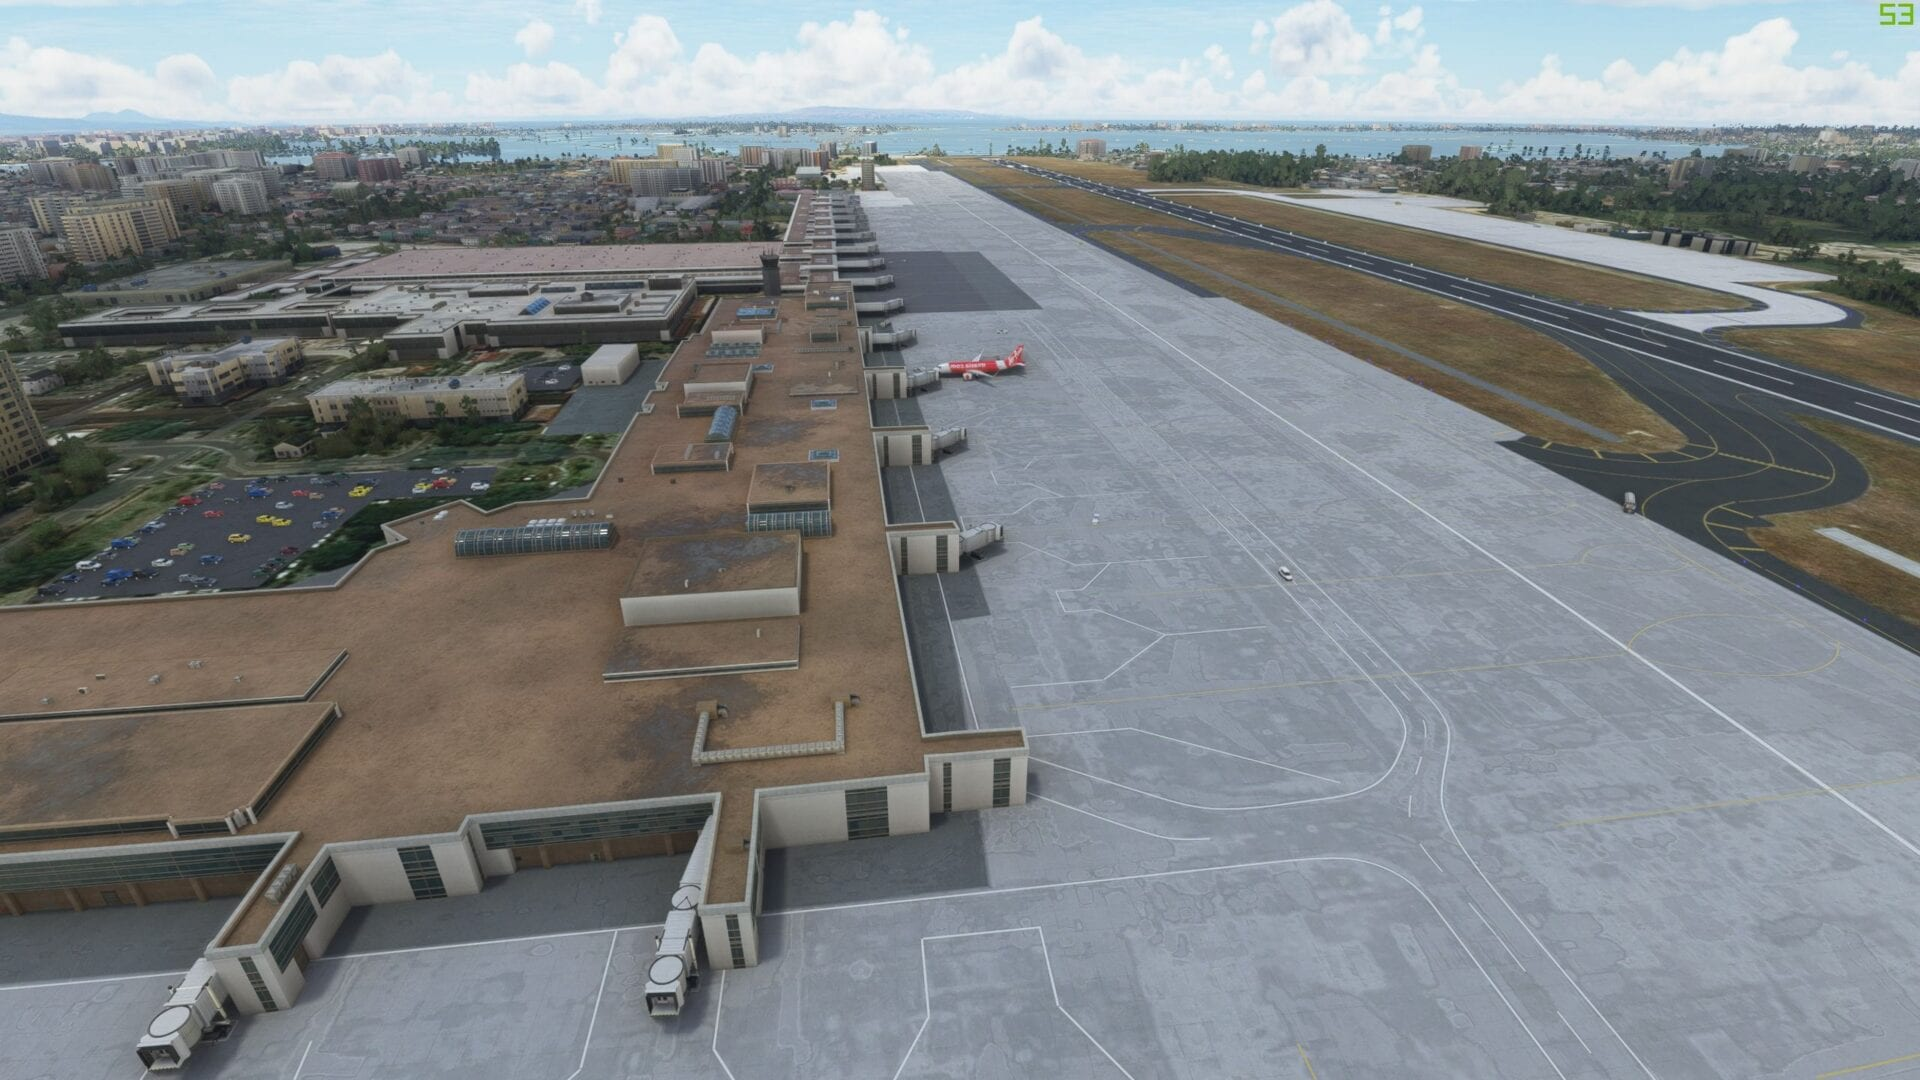 Microsoft Flight Simulator Bali Airport Review